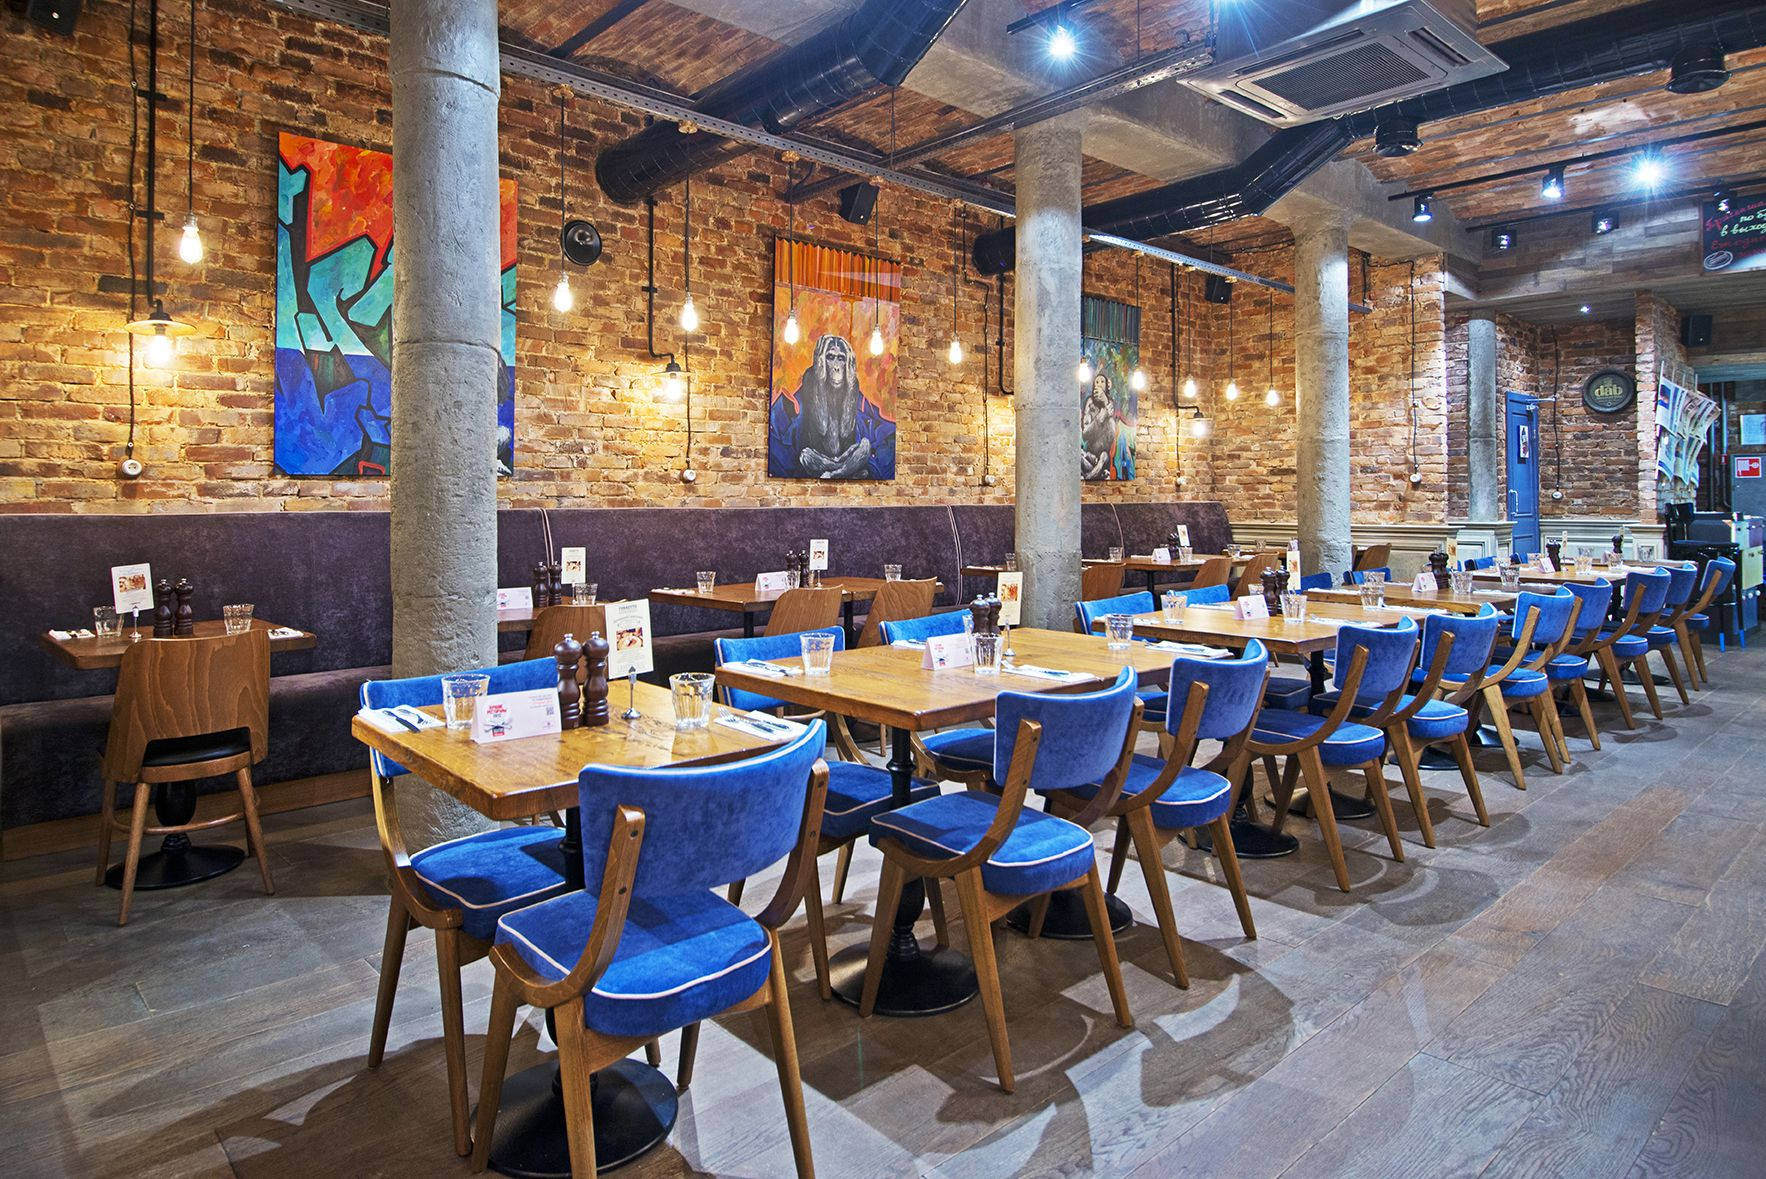 industrial style restaurant furniture. Basic Collection Il Fornetto Blue Moscow Restaurant Design Furniture Russia Industrial Style L